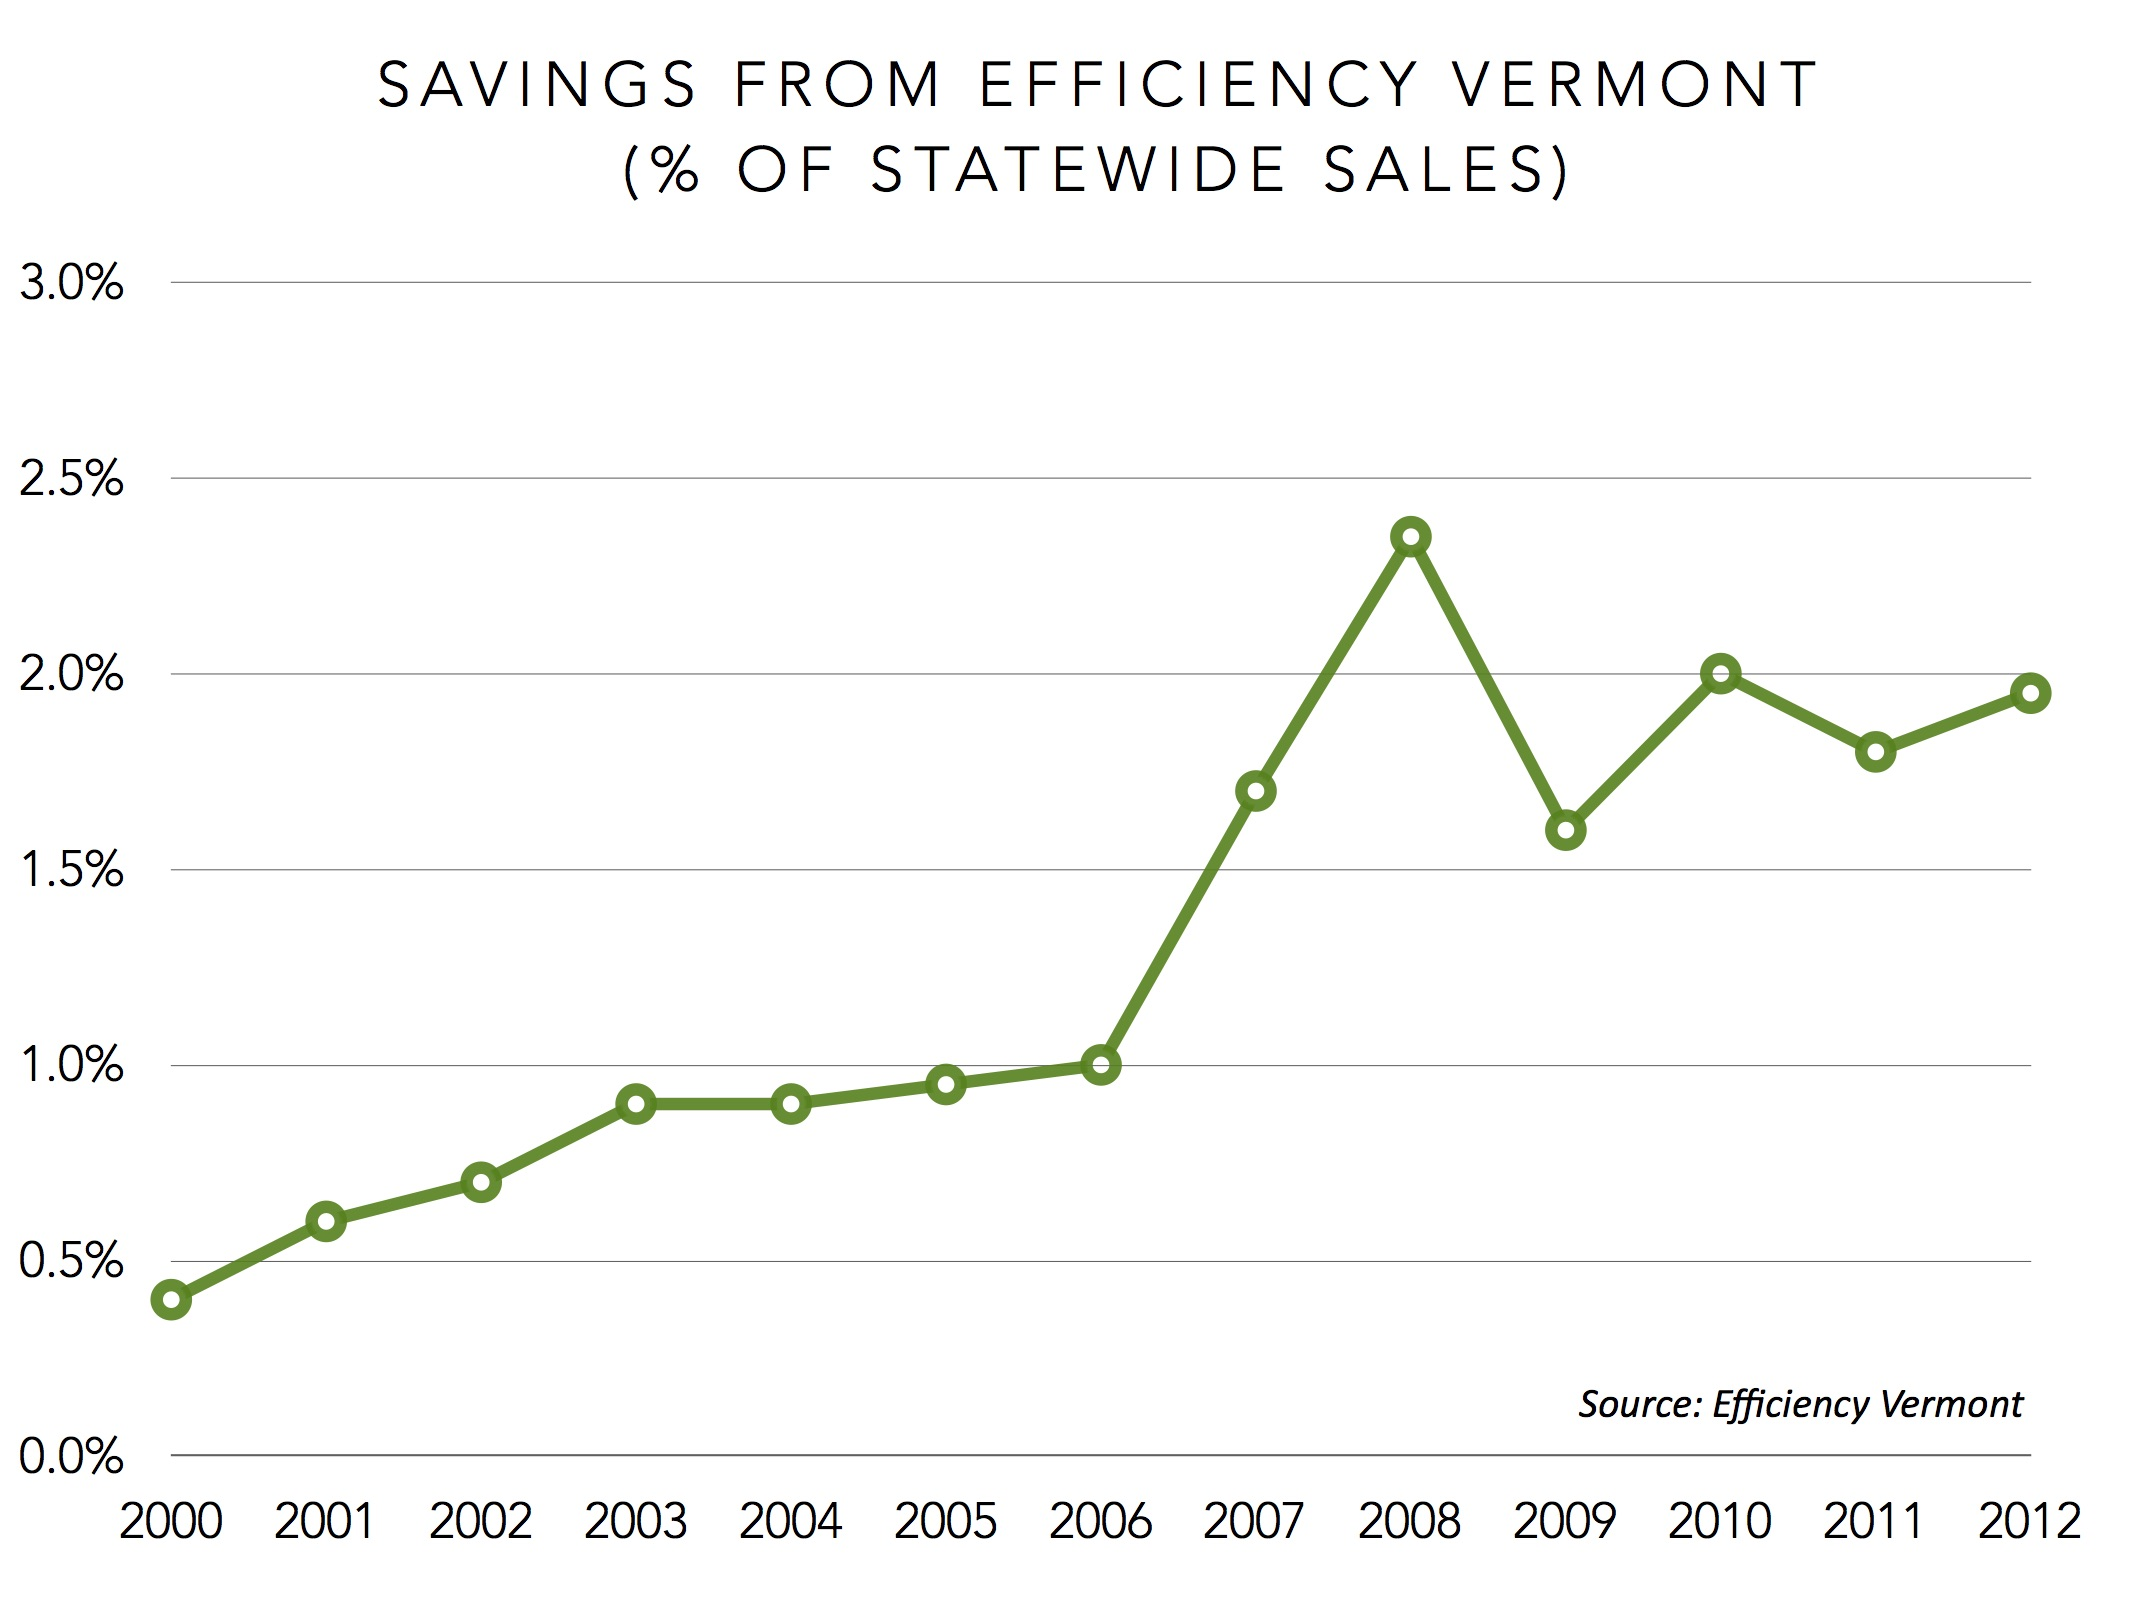 savings from efficiency vermont 2000-2012